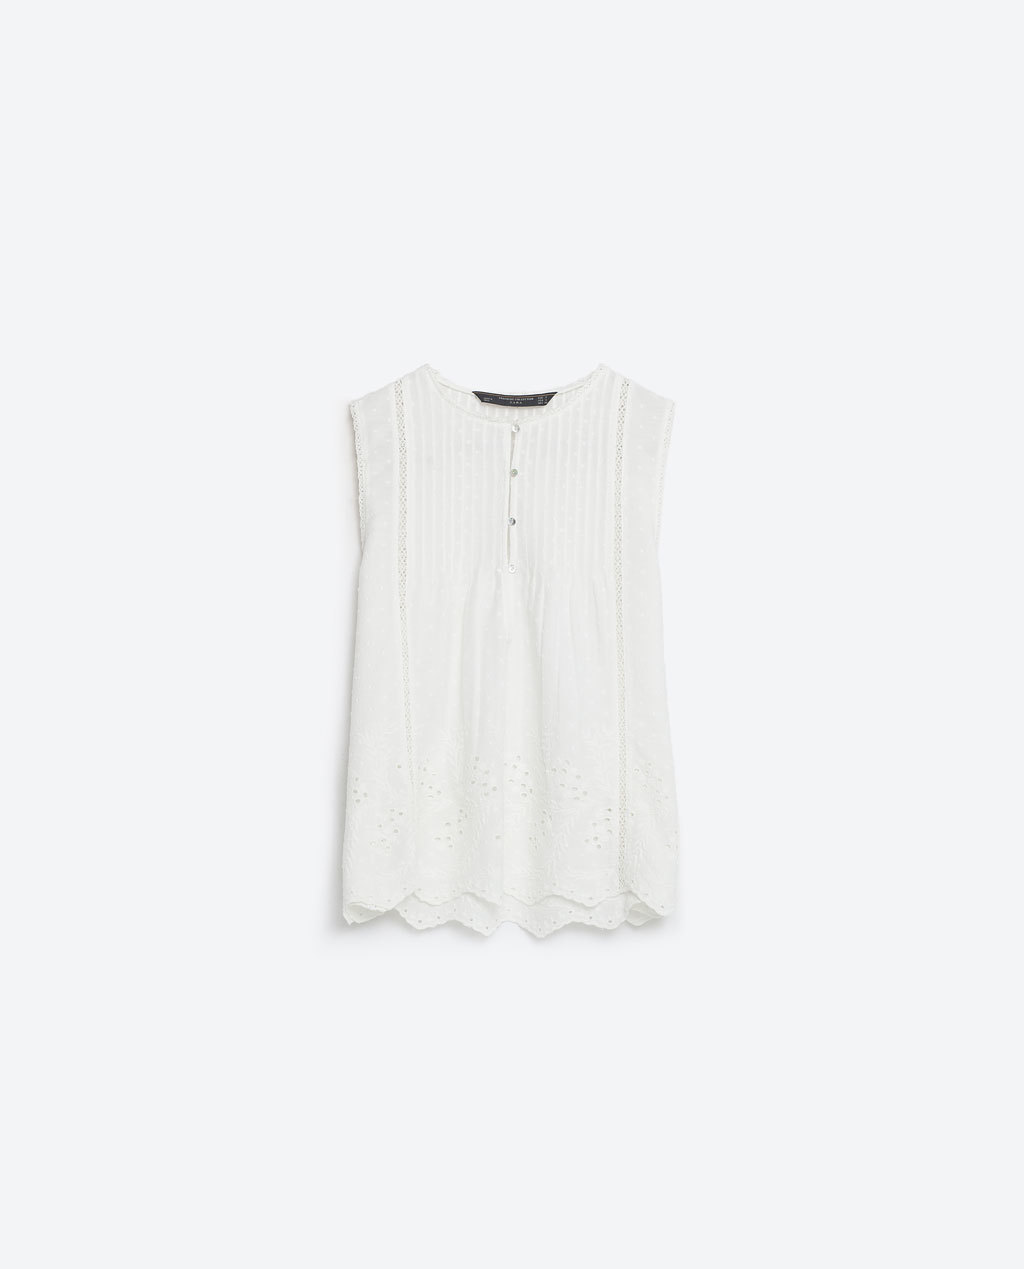 Embroidered Top - pattern: plain; sleeve style: sleeveless; predominant colour: white; occasions: casual; length: standard; style: top; fibres: cotton - 100%; fit: body skimming; neckline: crew; sleeve length: sleeveless; texture group: cotton feel fabrics; pattern type: fabric; season: s/s 2016; wardrobe: basic